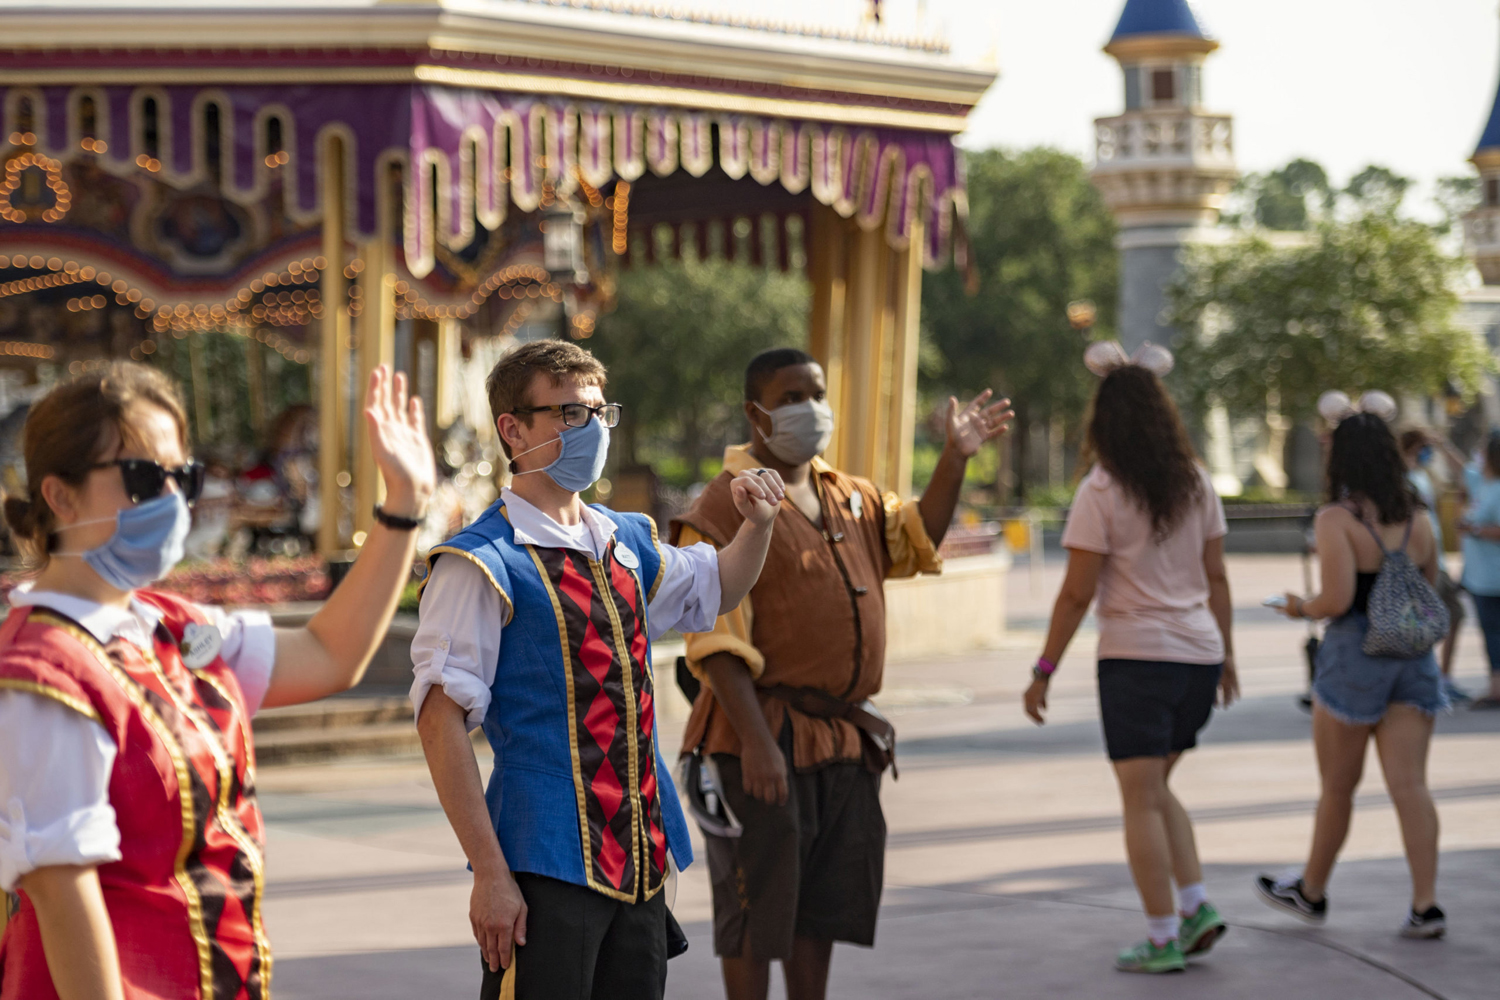 In this handout photo provided by Walt Disney World Resort, Disney cast members welcome guests to Magic Kingdom Park at Walt Disney World Resort